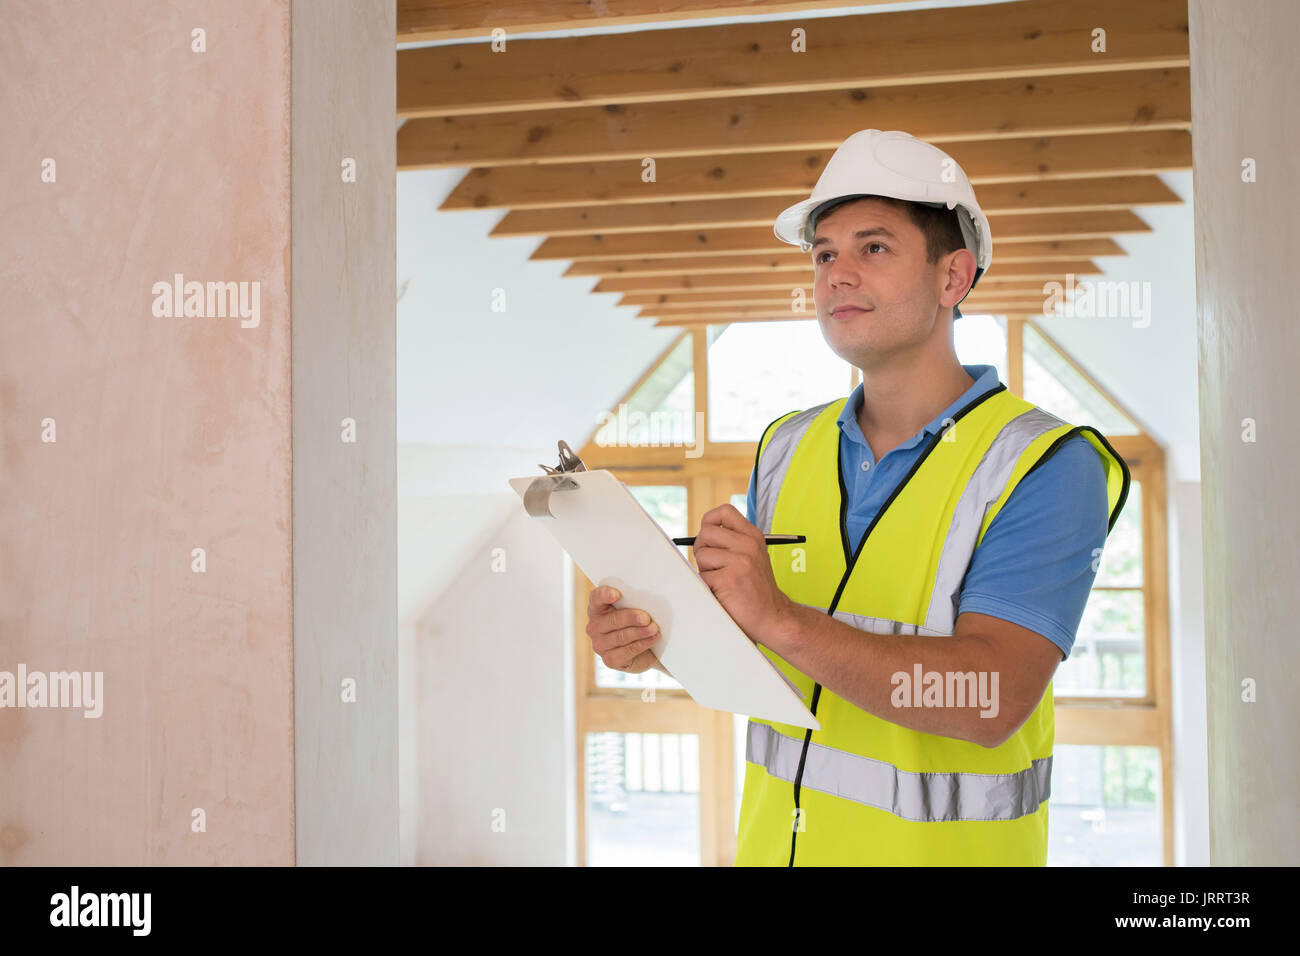 Building Inspector Looking At New Property - Stock Image